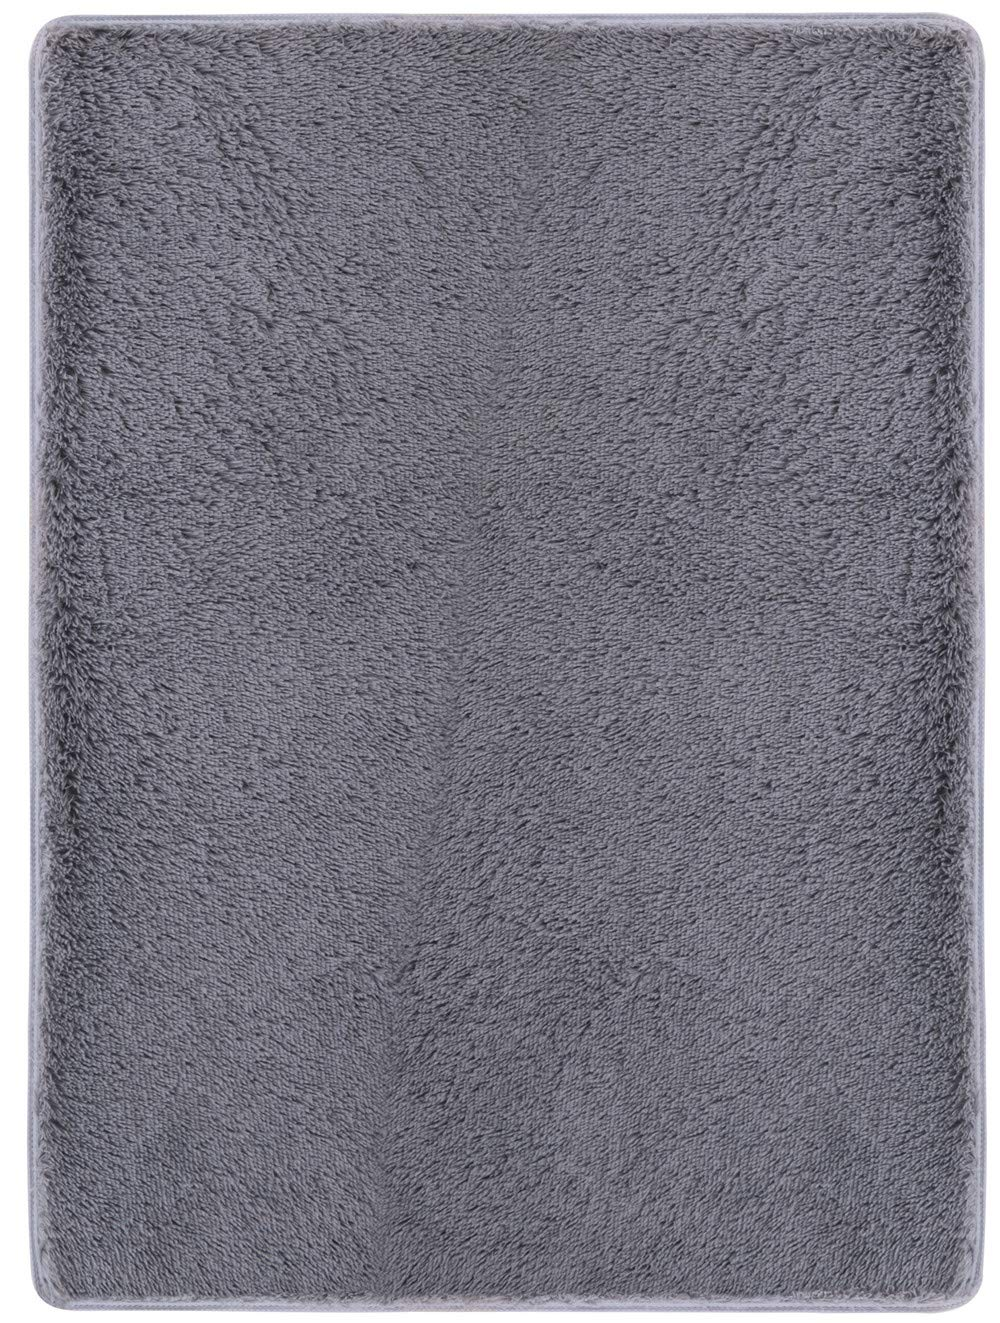 OYRE Modern Simple Ultra Soft Cozy Plush Indoor Area Non-Slip Plus Thick Rugs Fluffy Living Room Carpets Suitable for Children Play Bedroom Home Decor (4' x 5' 2'', Gray)